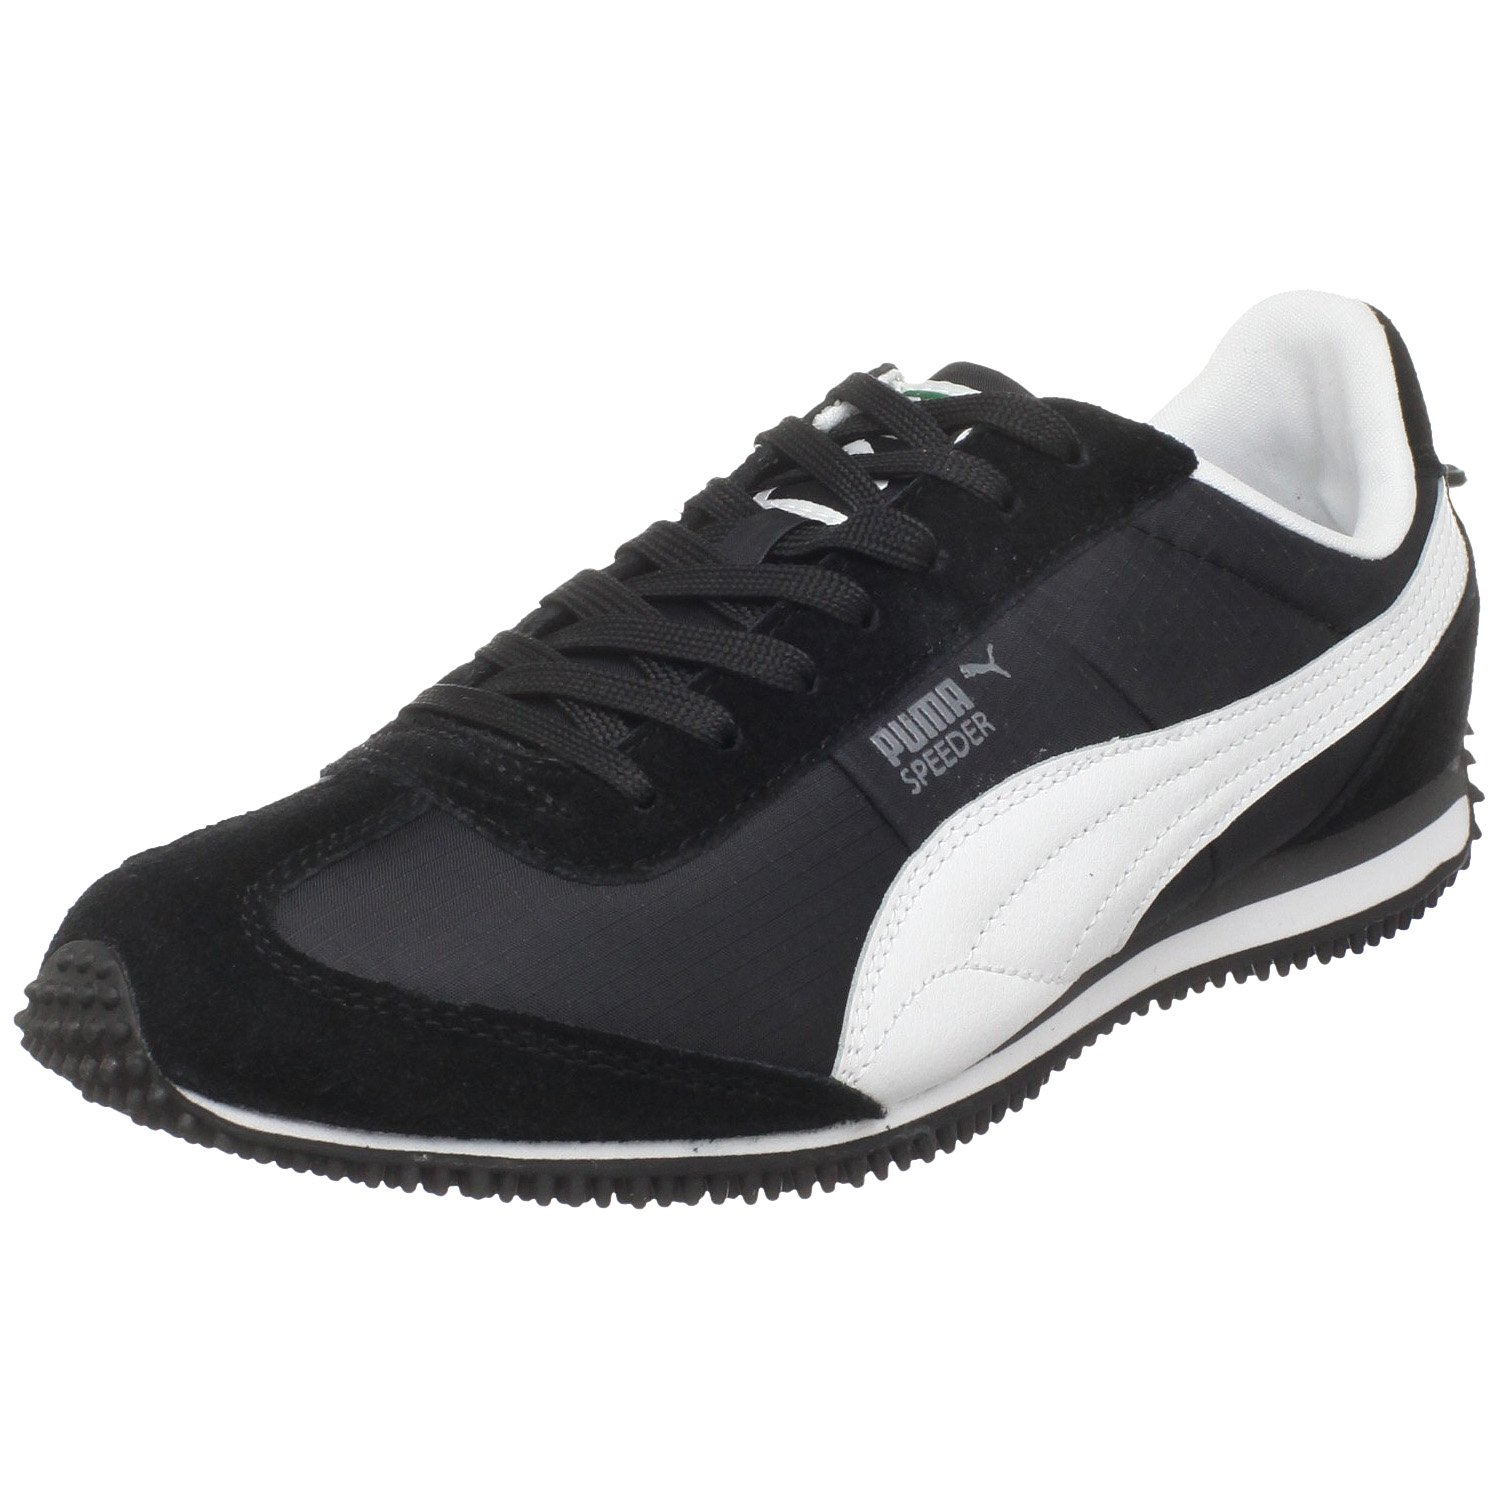 Puma Speeder Rp 14 M Us Men Black  Amazon.co.uk  Shoes   Bags 352c0bbd7